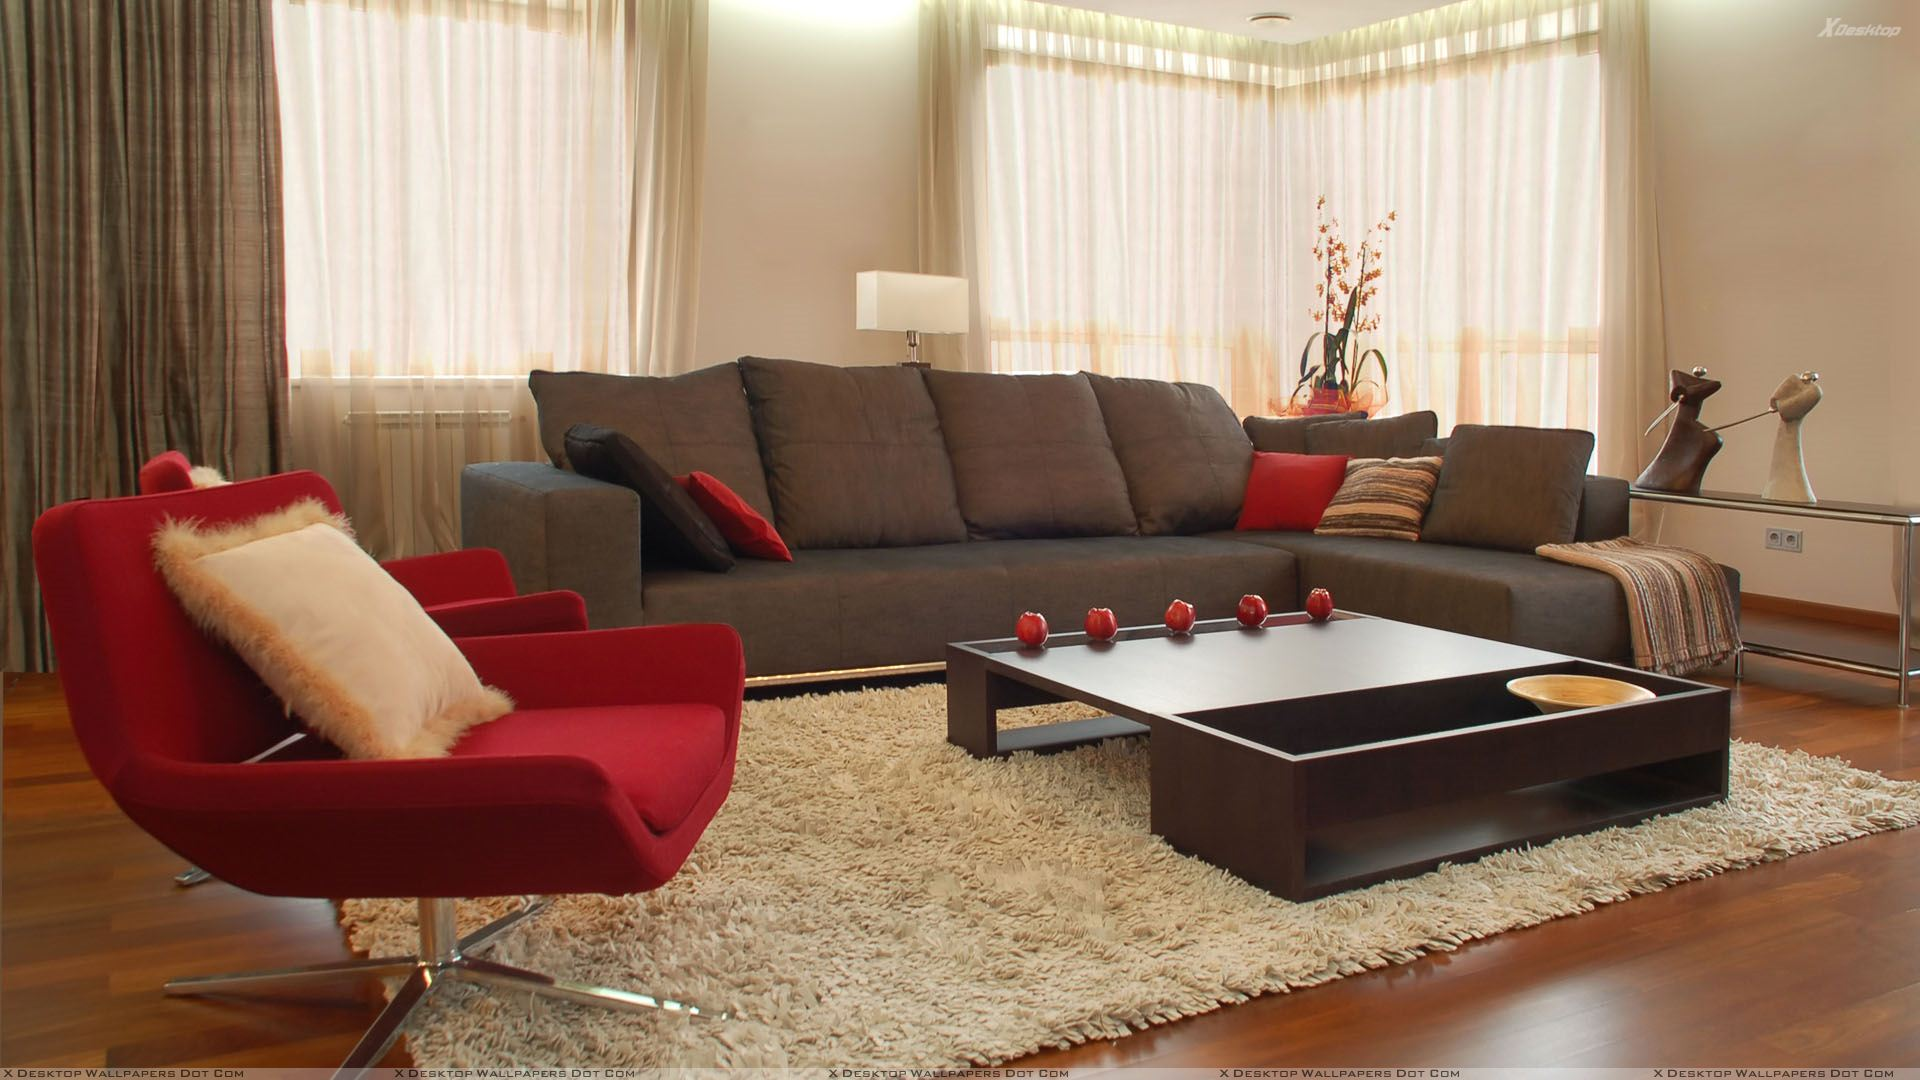 Red And Grey Sofa In Resting Room Wallpaper